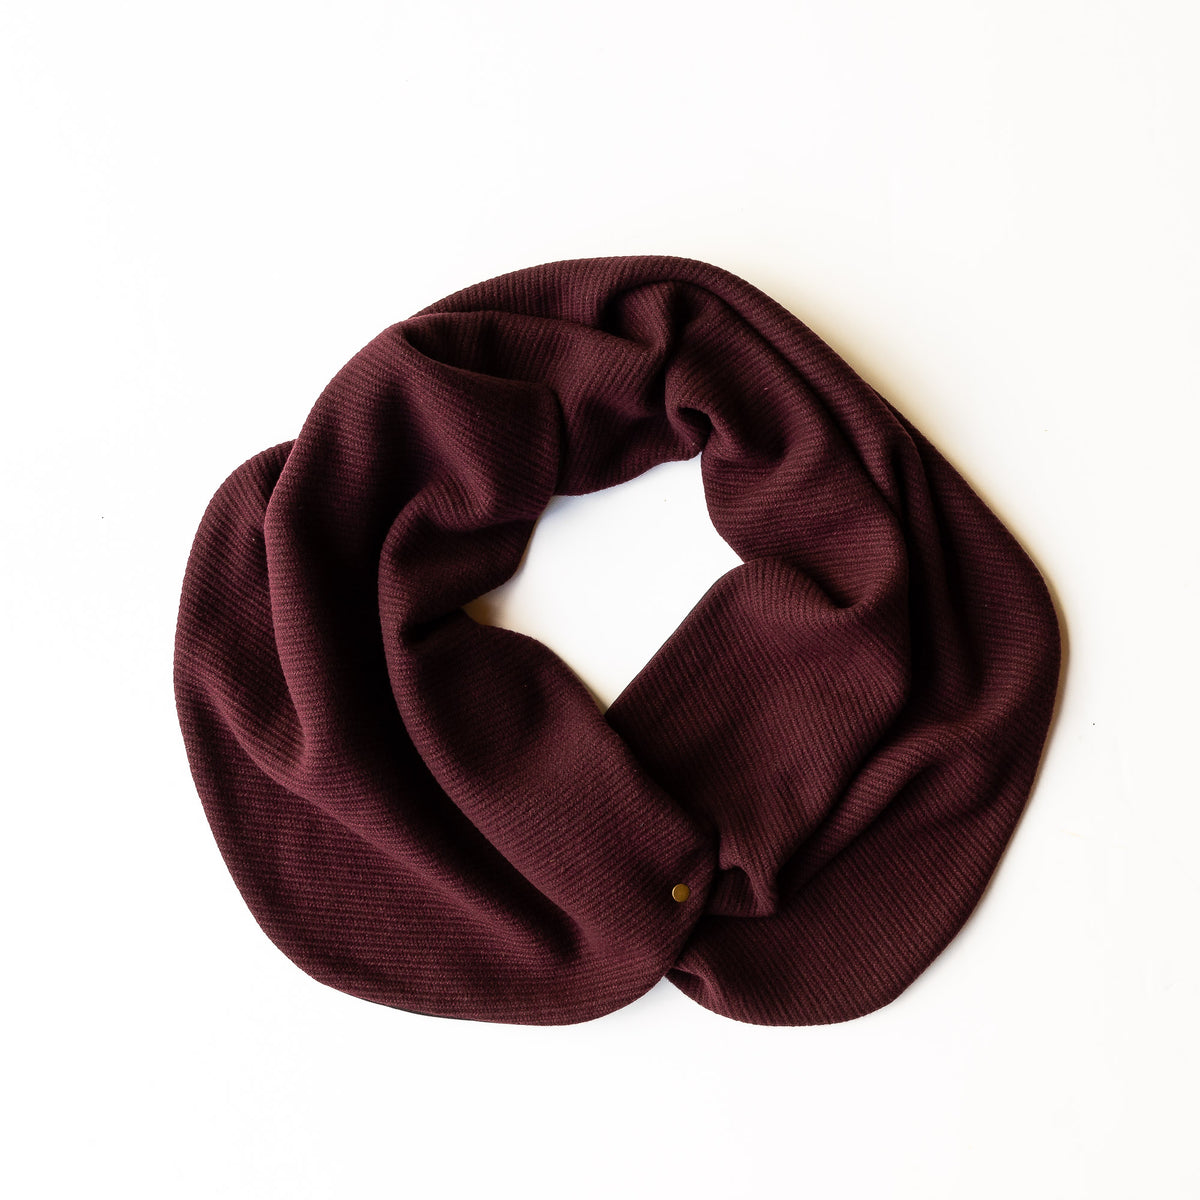 Dandurand Knitted Cotton Scarf - Burgundy - Sold by Chic & Basta